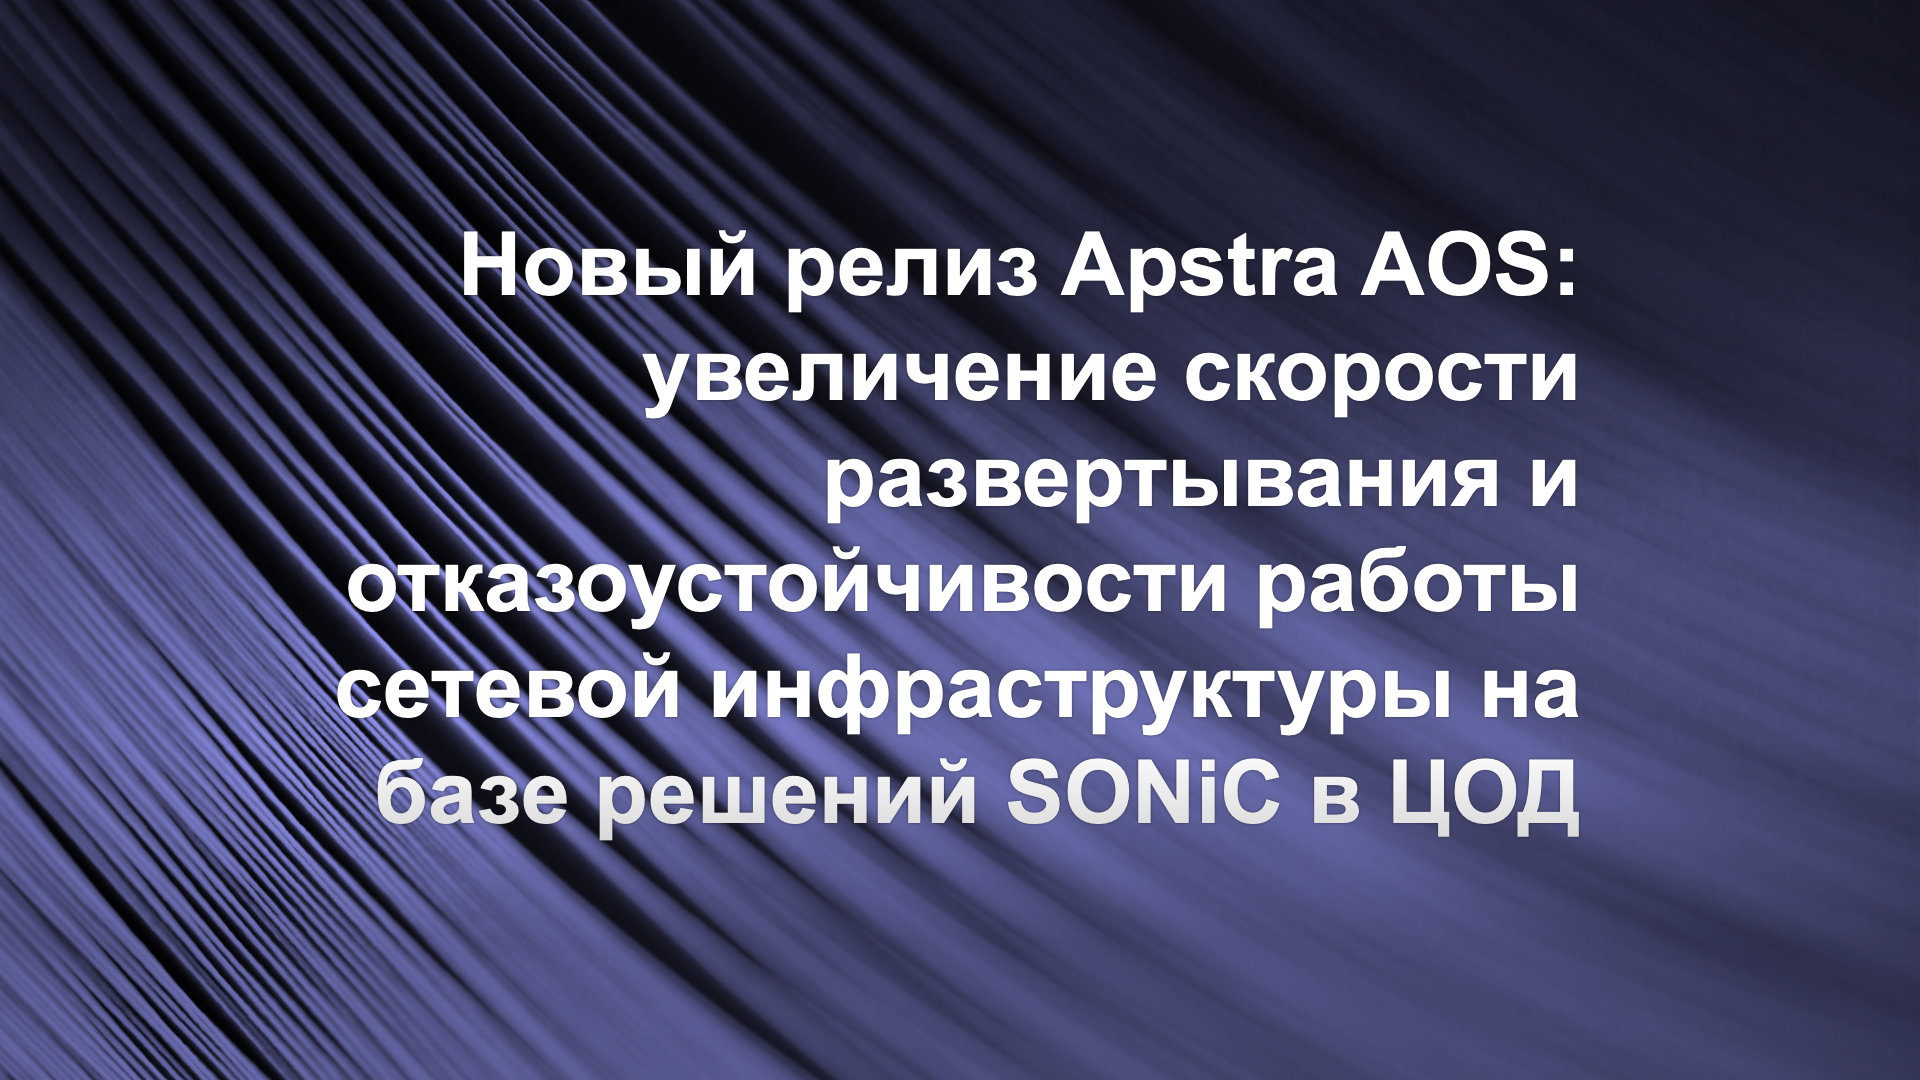 Apstra accelerates Sonic